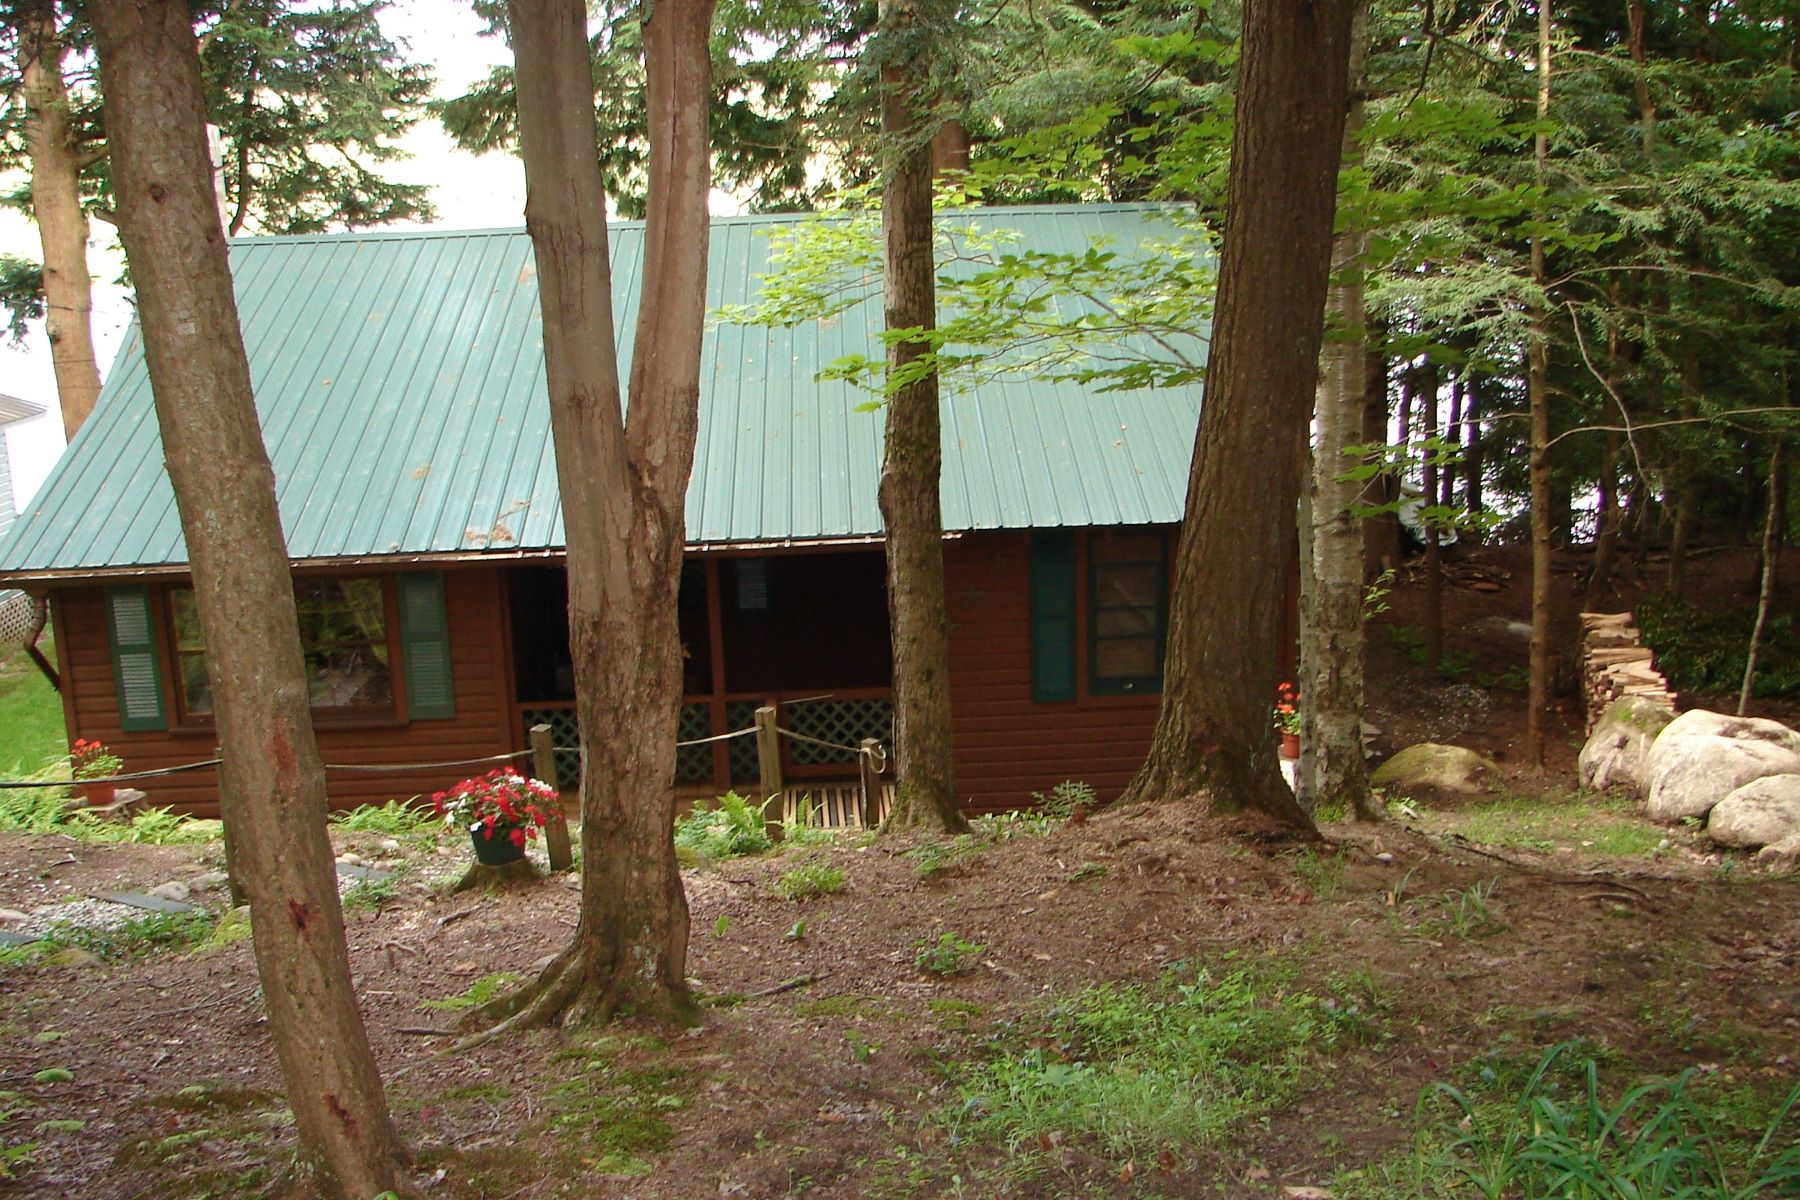 Additional photo for property listing at Rustic seasonal camp with 60 feet of waterfront on serene Otter Lake 4251 Lakeview Rd Forestport, Nueva York 13494 Estados Unidos